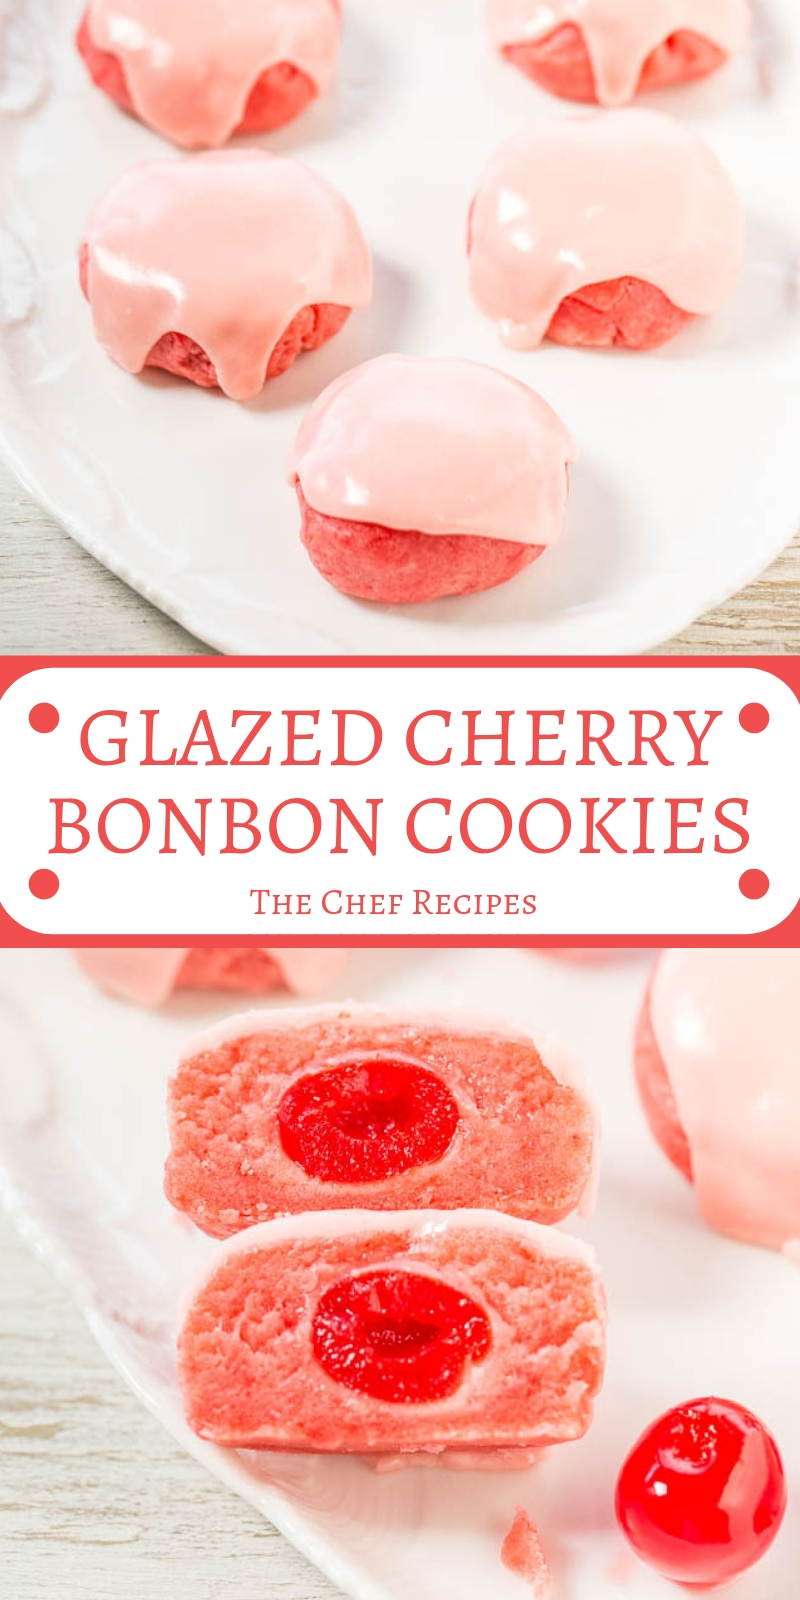 GLAZED CHERRY BONBON COOKIES